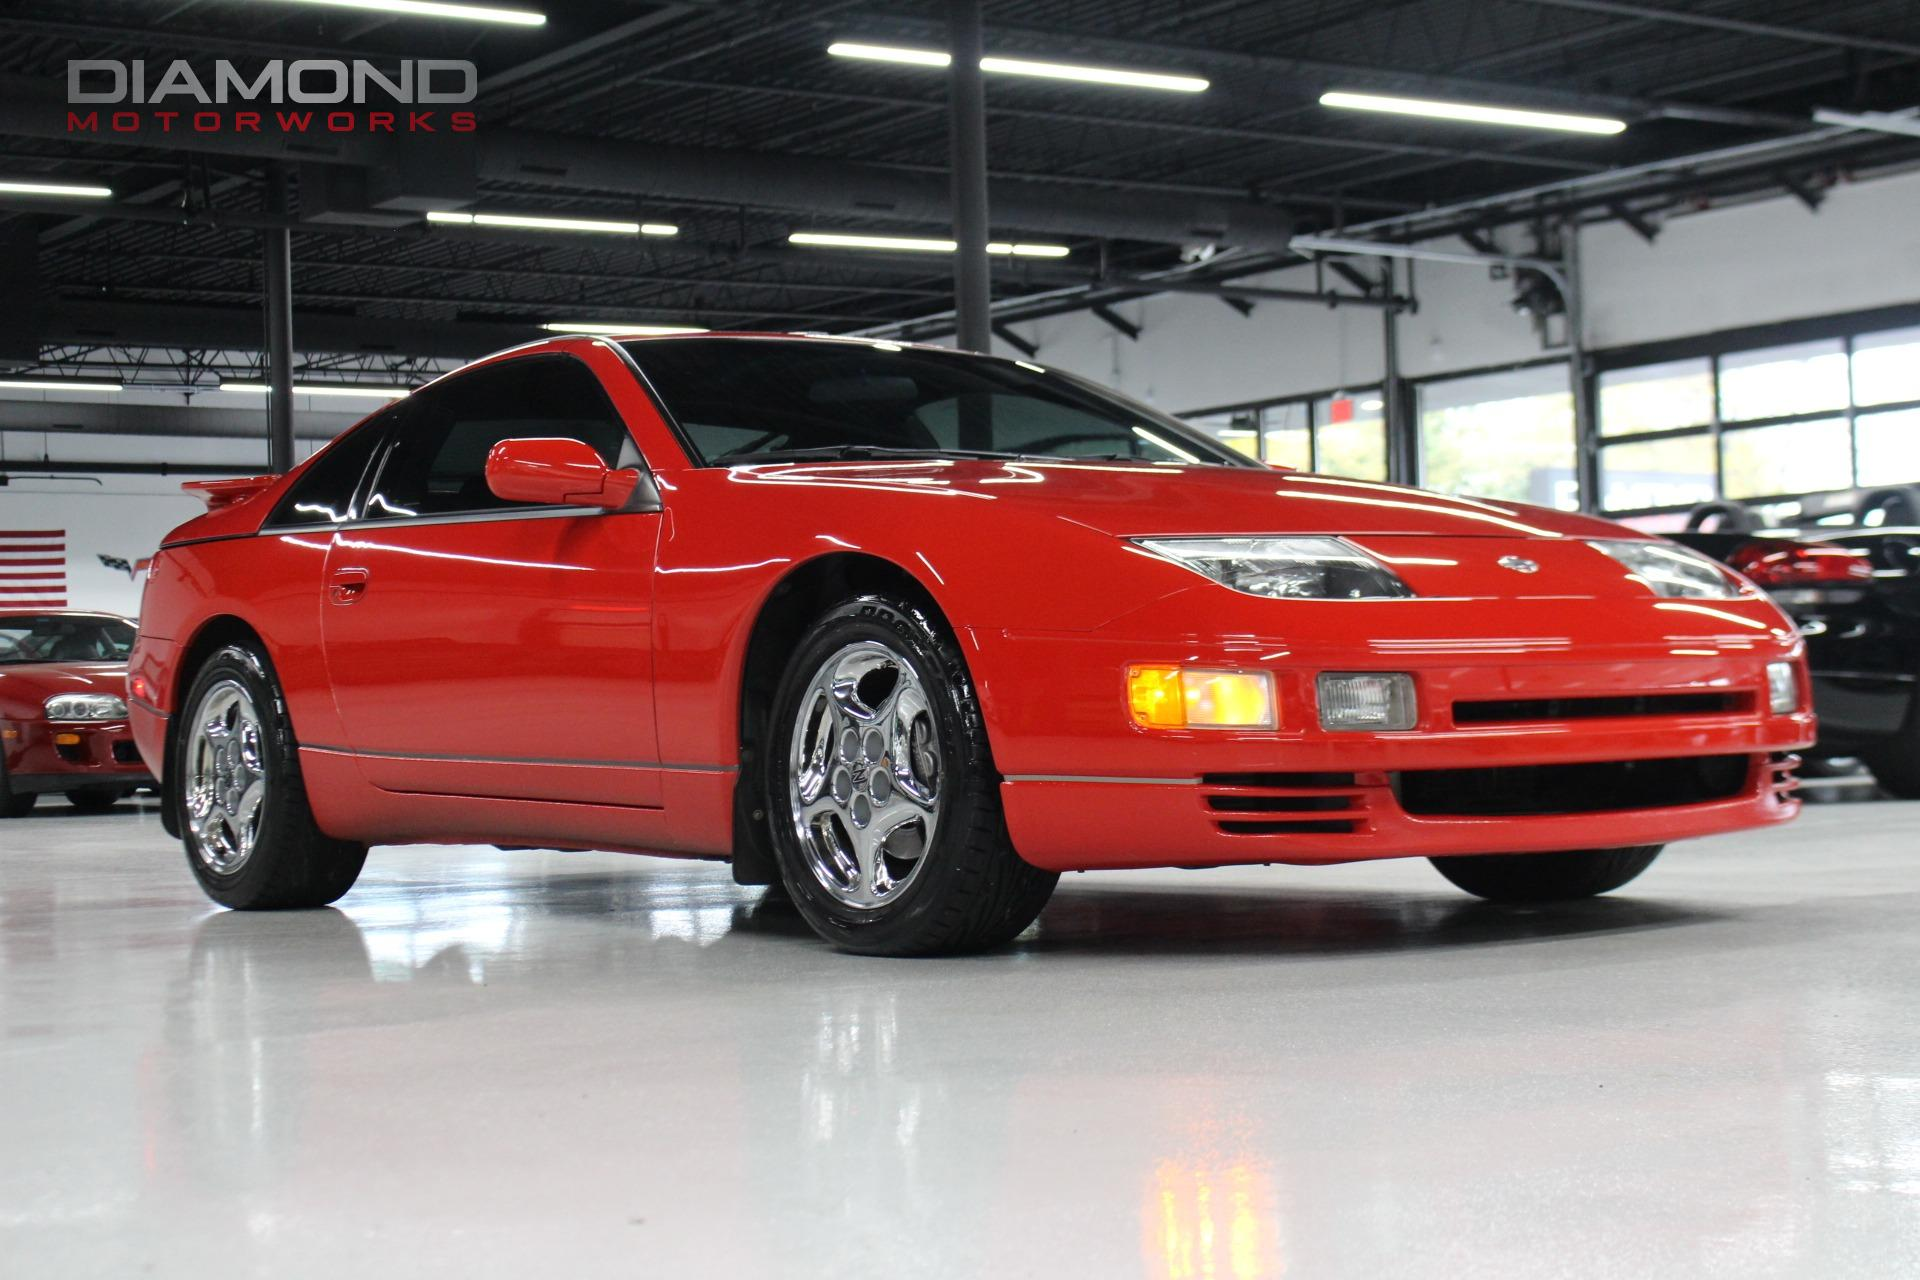 1996 nissan 300zx turbo stock 580552 for sale near lisle il il nissan dealer. Black Bedroom Furniture Sets. Home Design Ideas